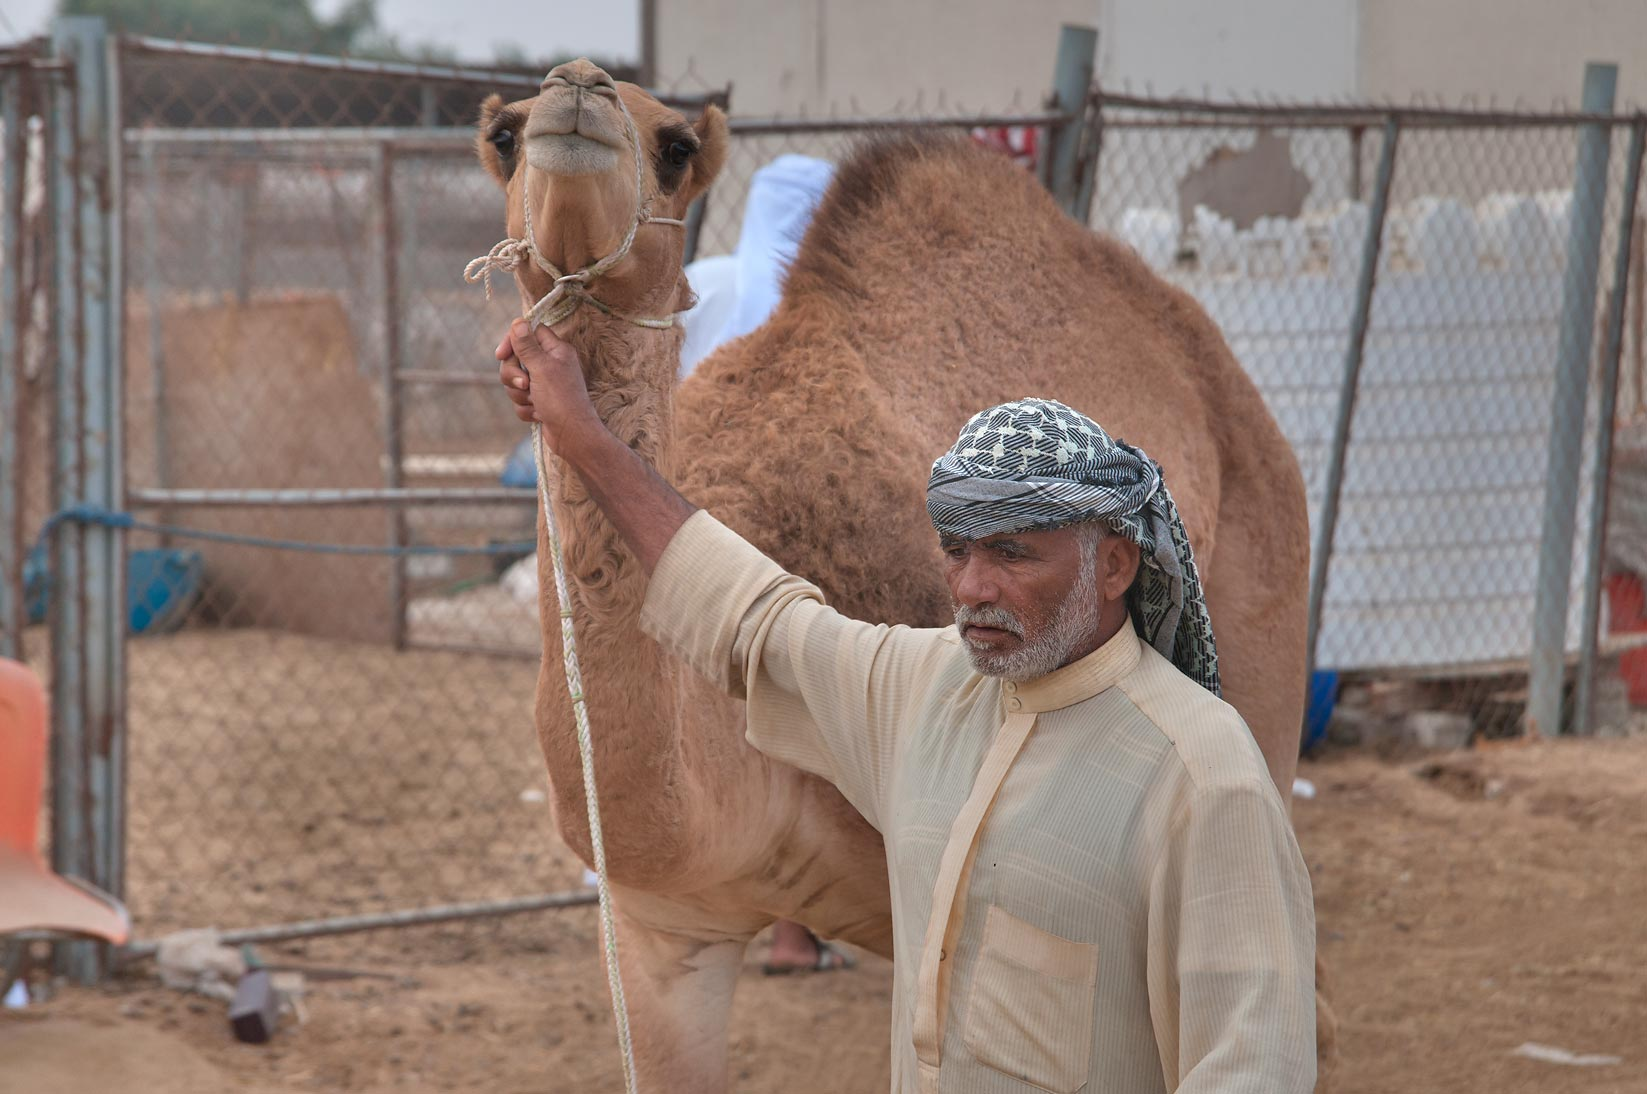 Animals keeper in Camel Market (Souq). Doha, Qatar